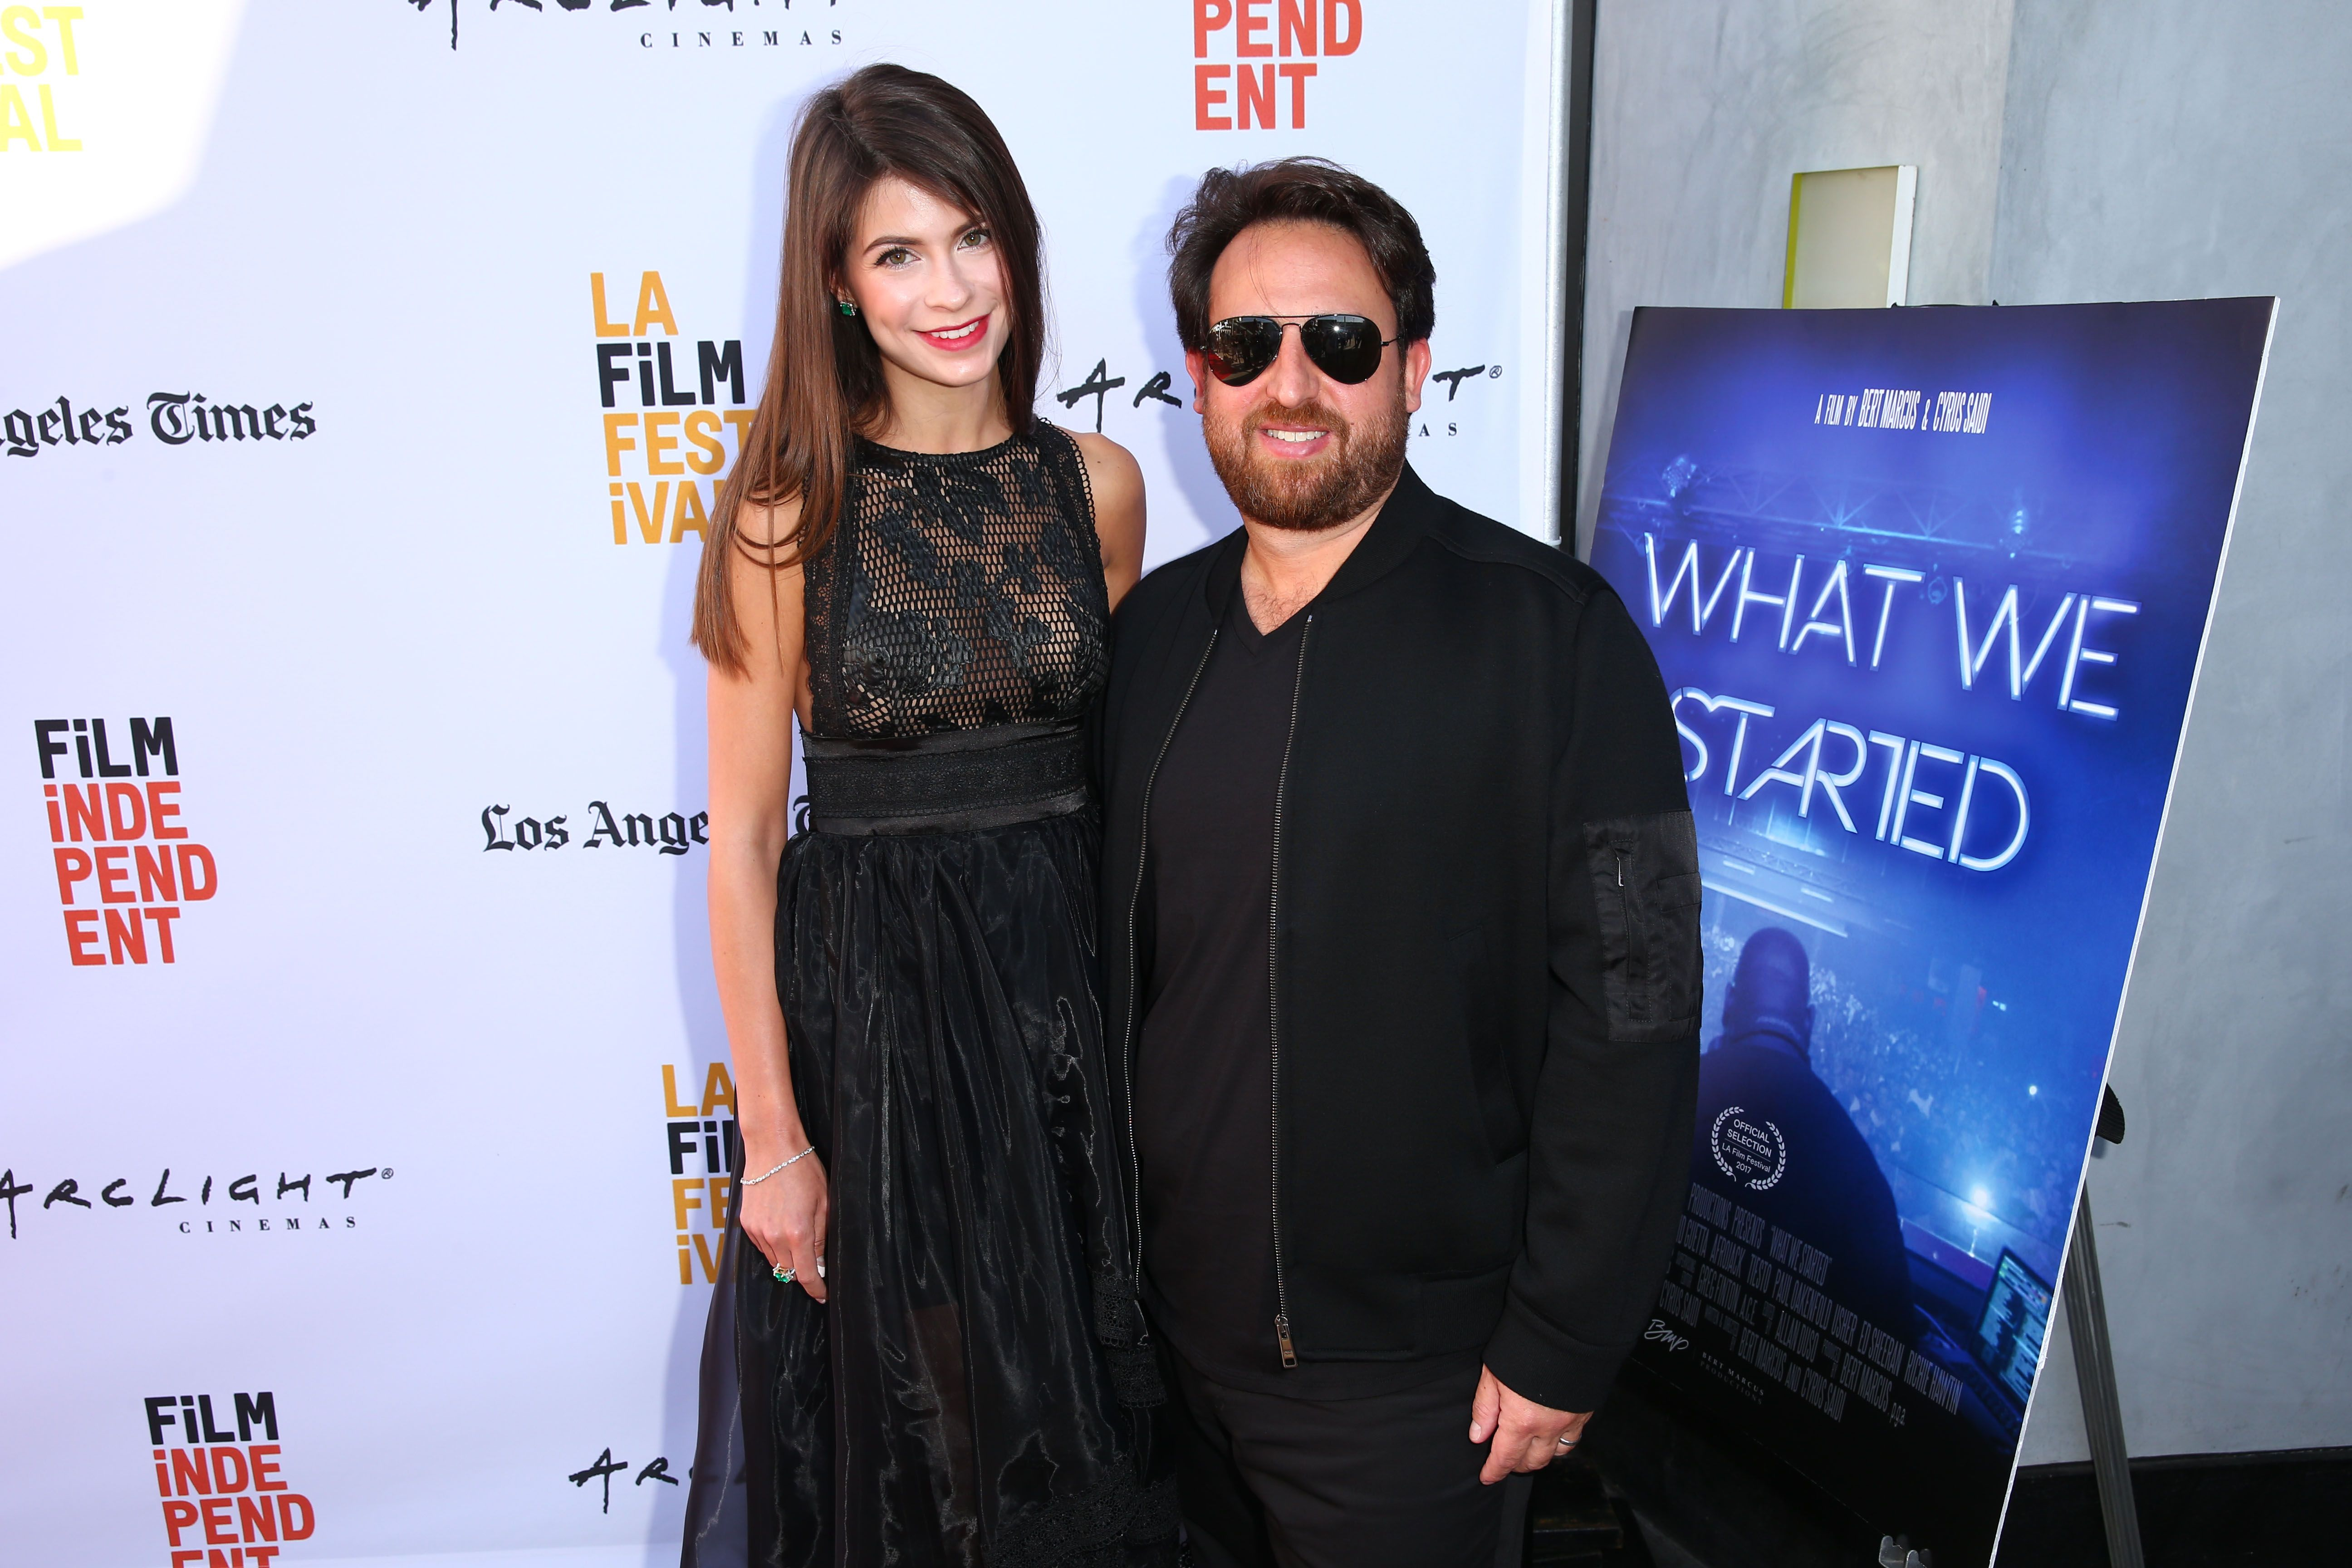 Russell Faibisch at the WHAT WE STARTED film premiere at the LA Festival c